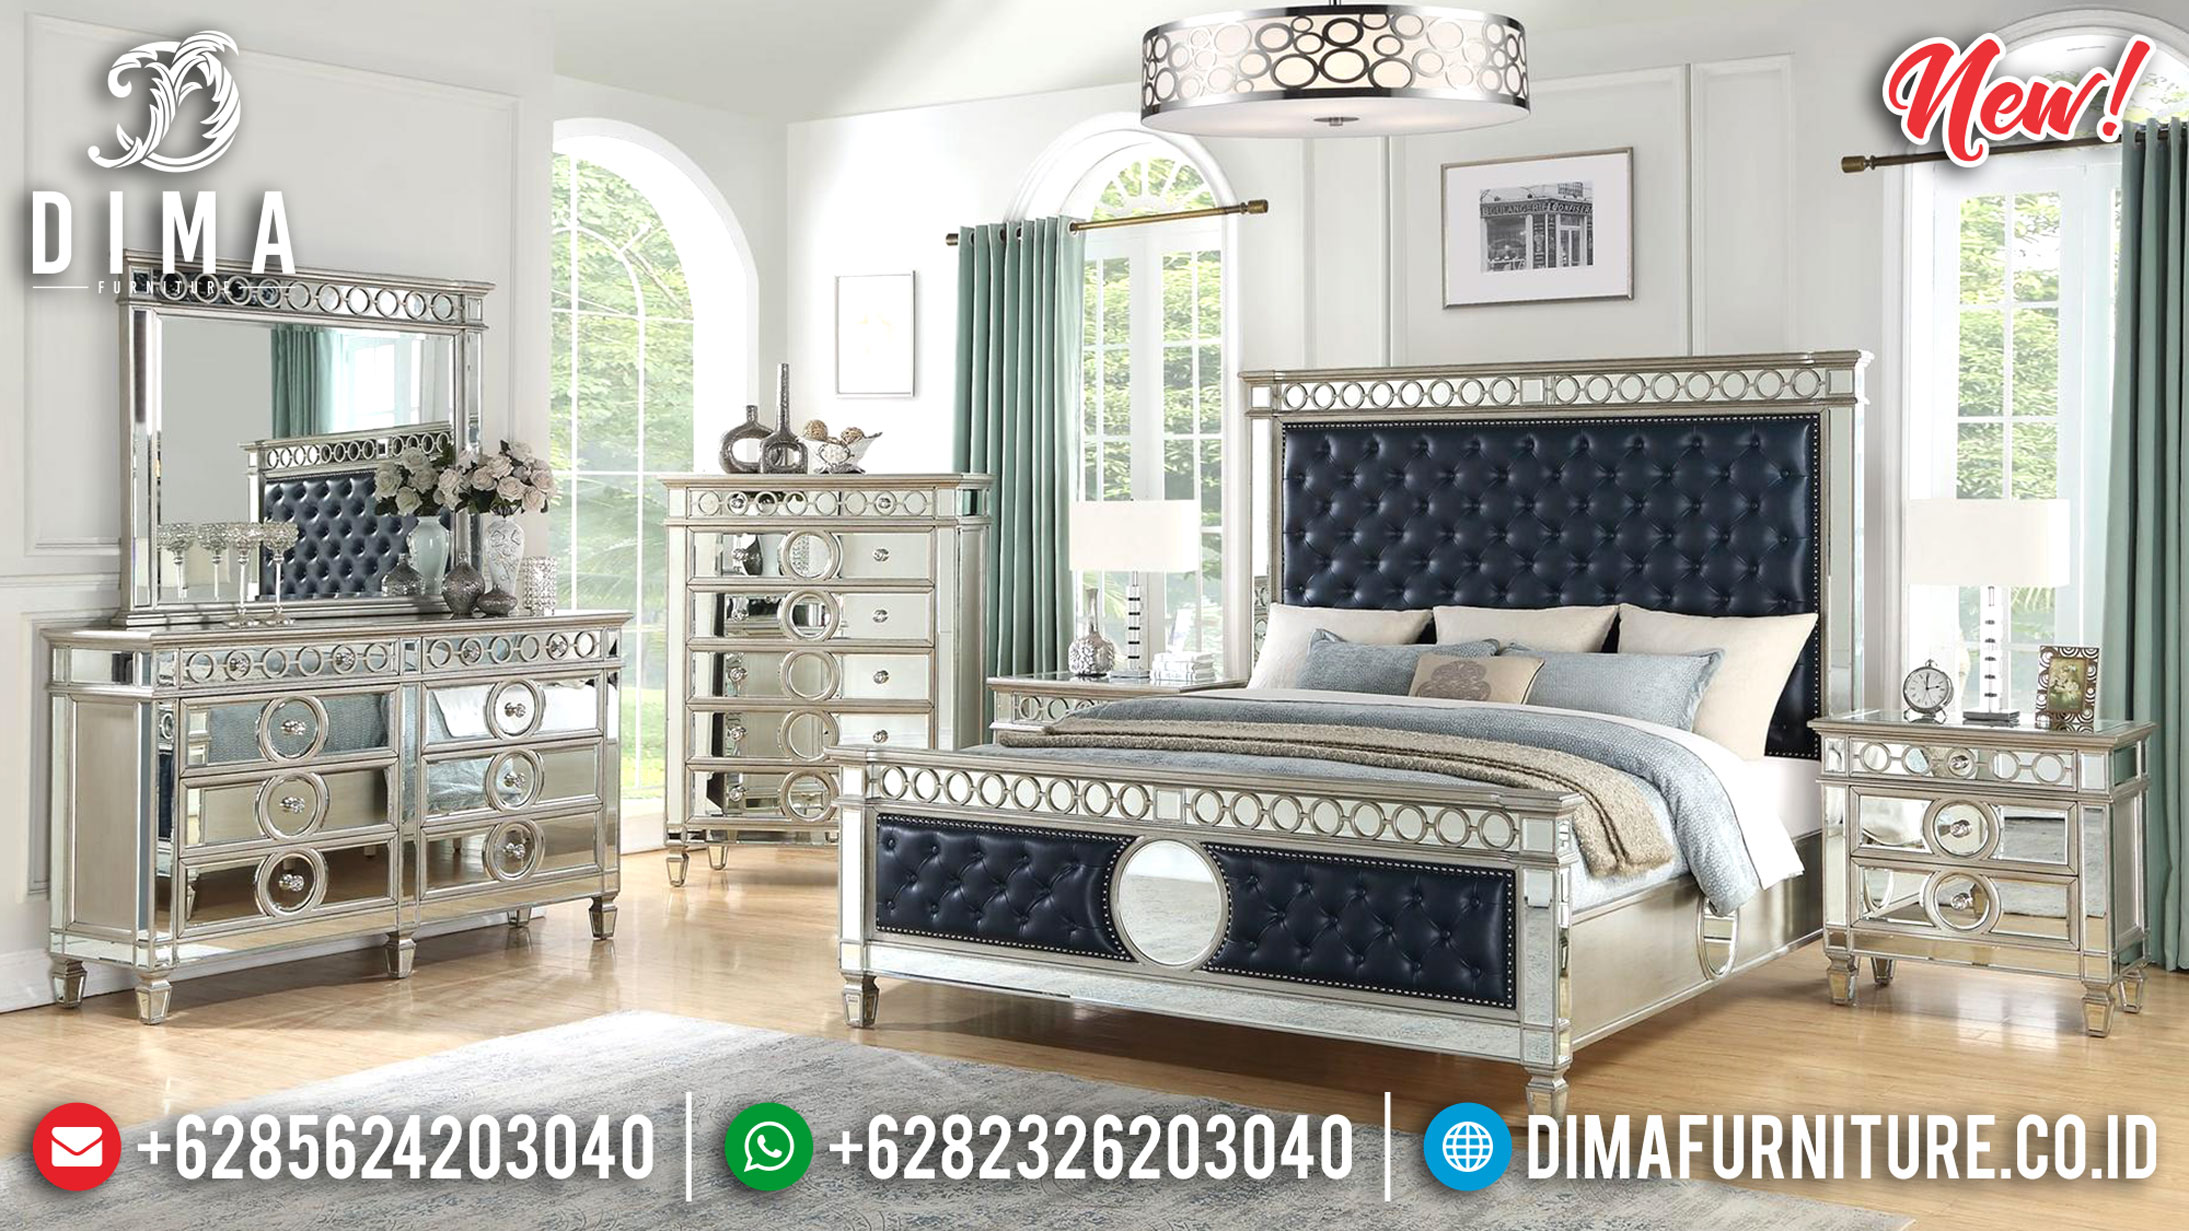 Full Glassed Kamar Set Modern Exclusive Room Design Luxury Furniture Jepara TTJ-1084